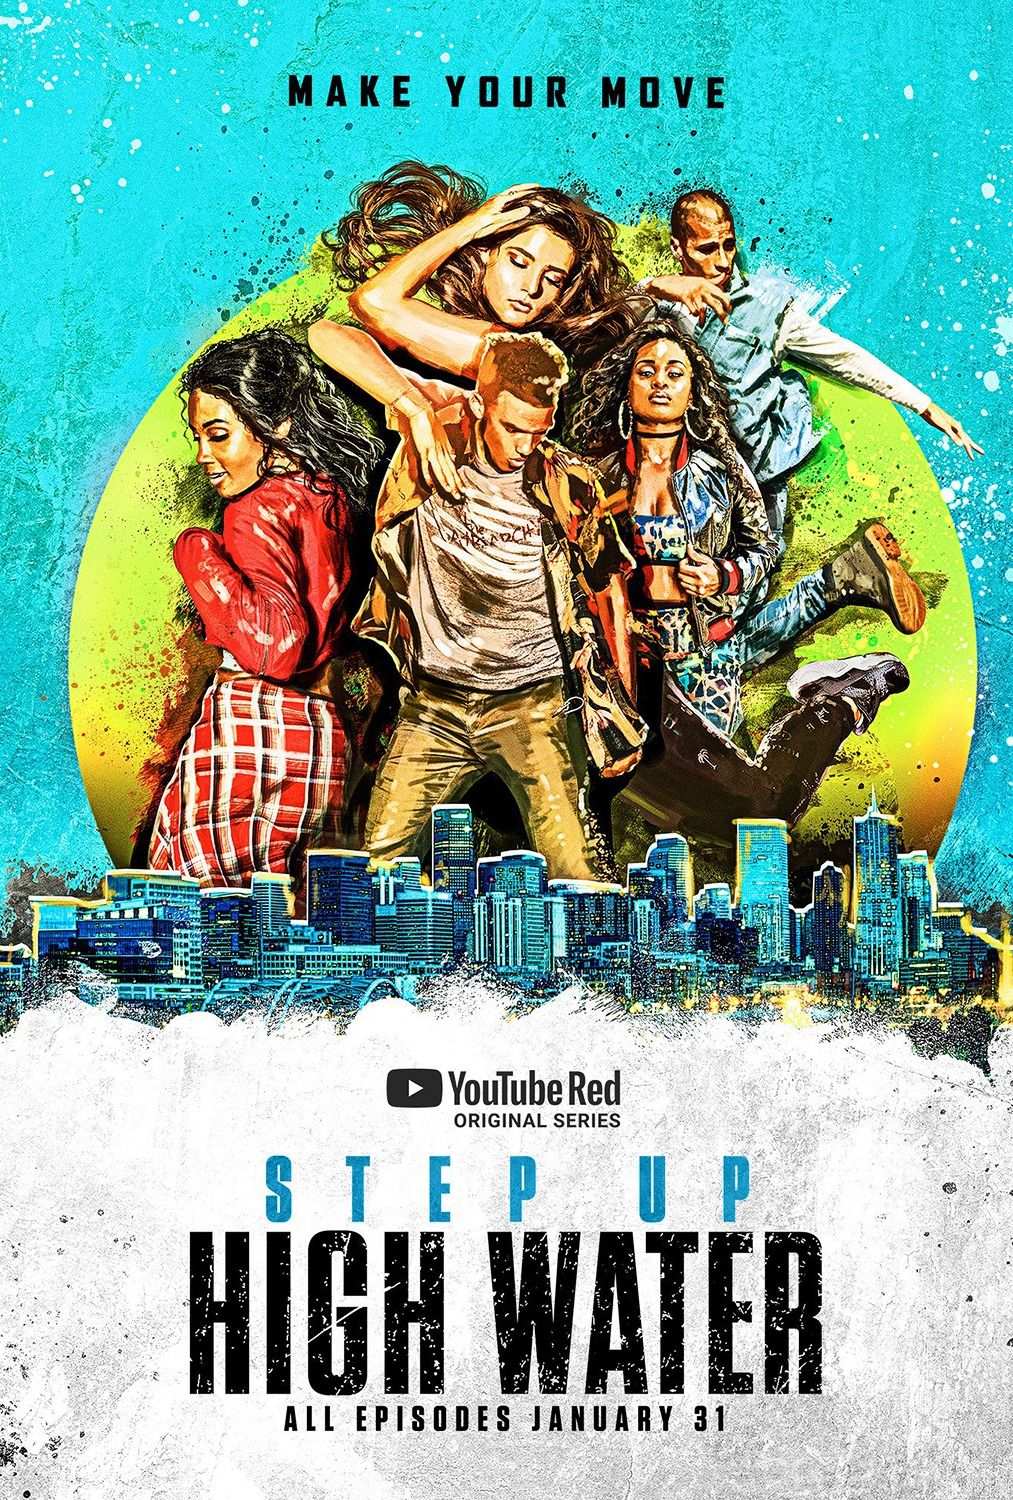 Return to the main poster page for Step Up: High Water